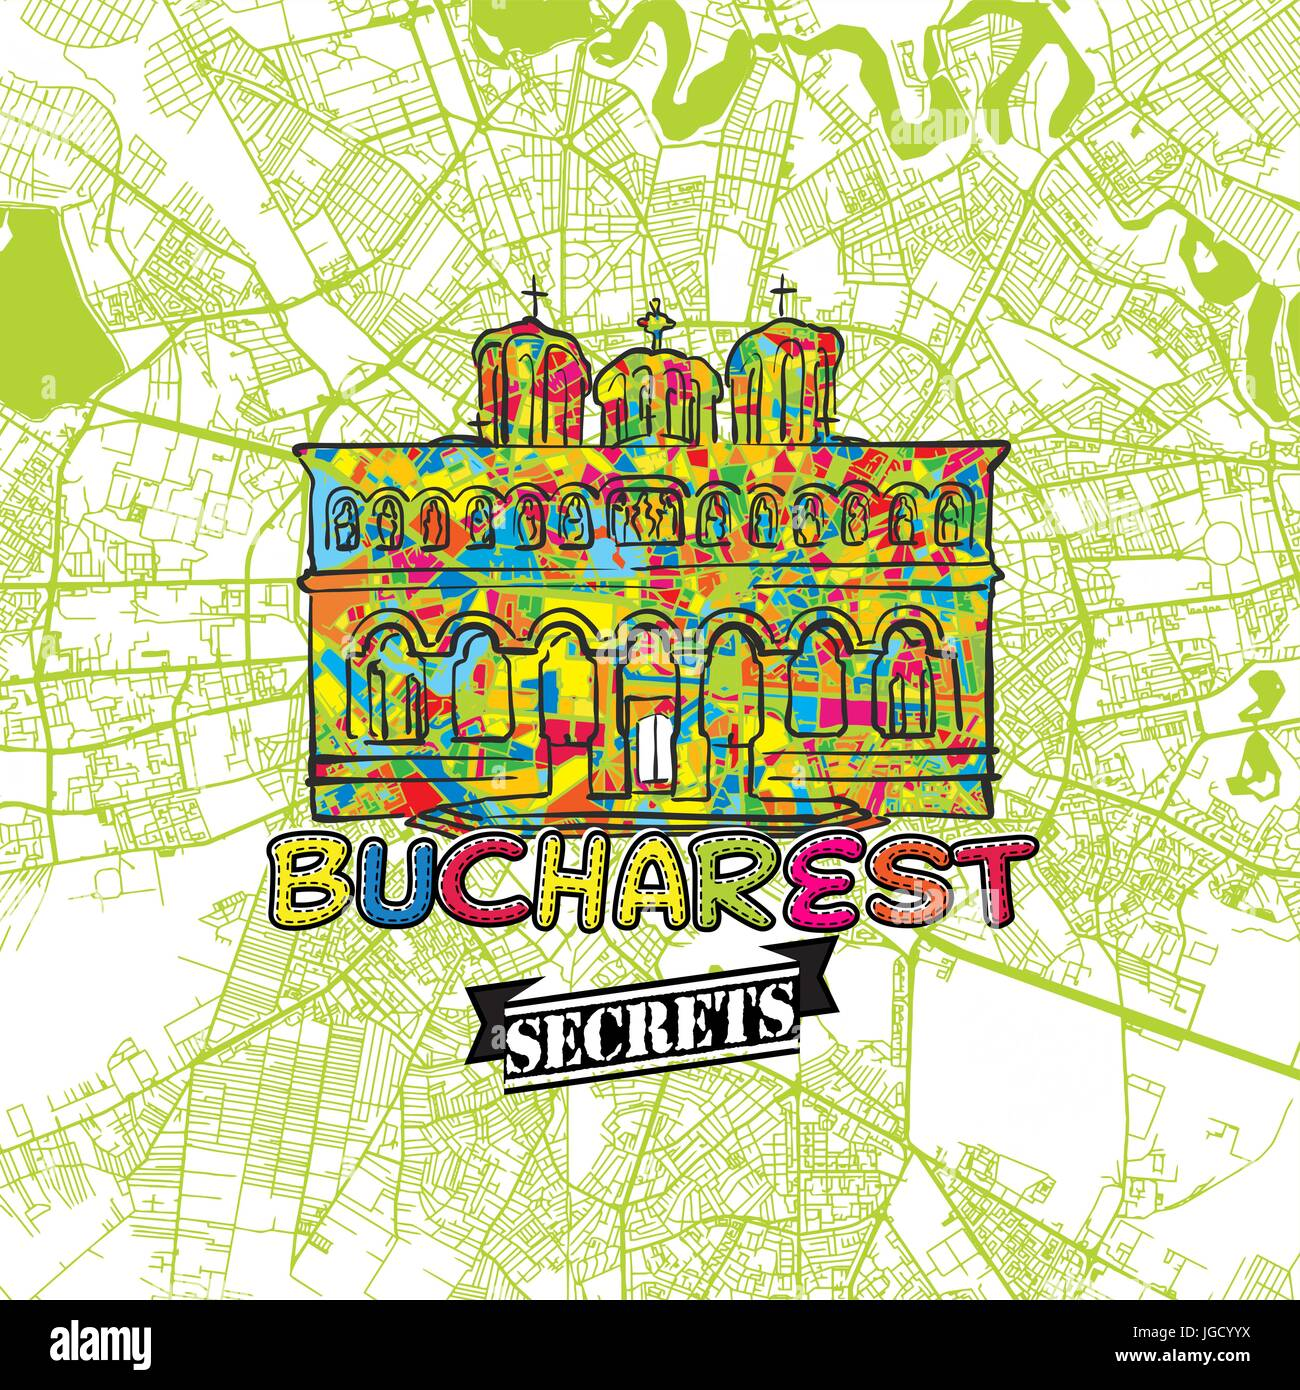 Bucharest Travel Secrets Art Map for mapping experts and travel guides. Handmade city logo, typo badge and hand - Stock Image